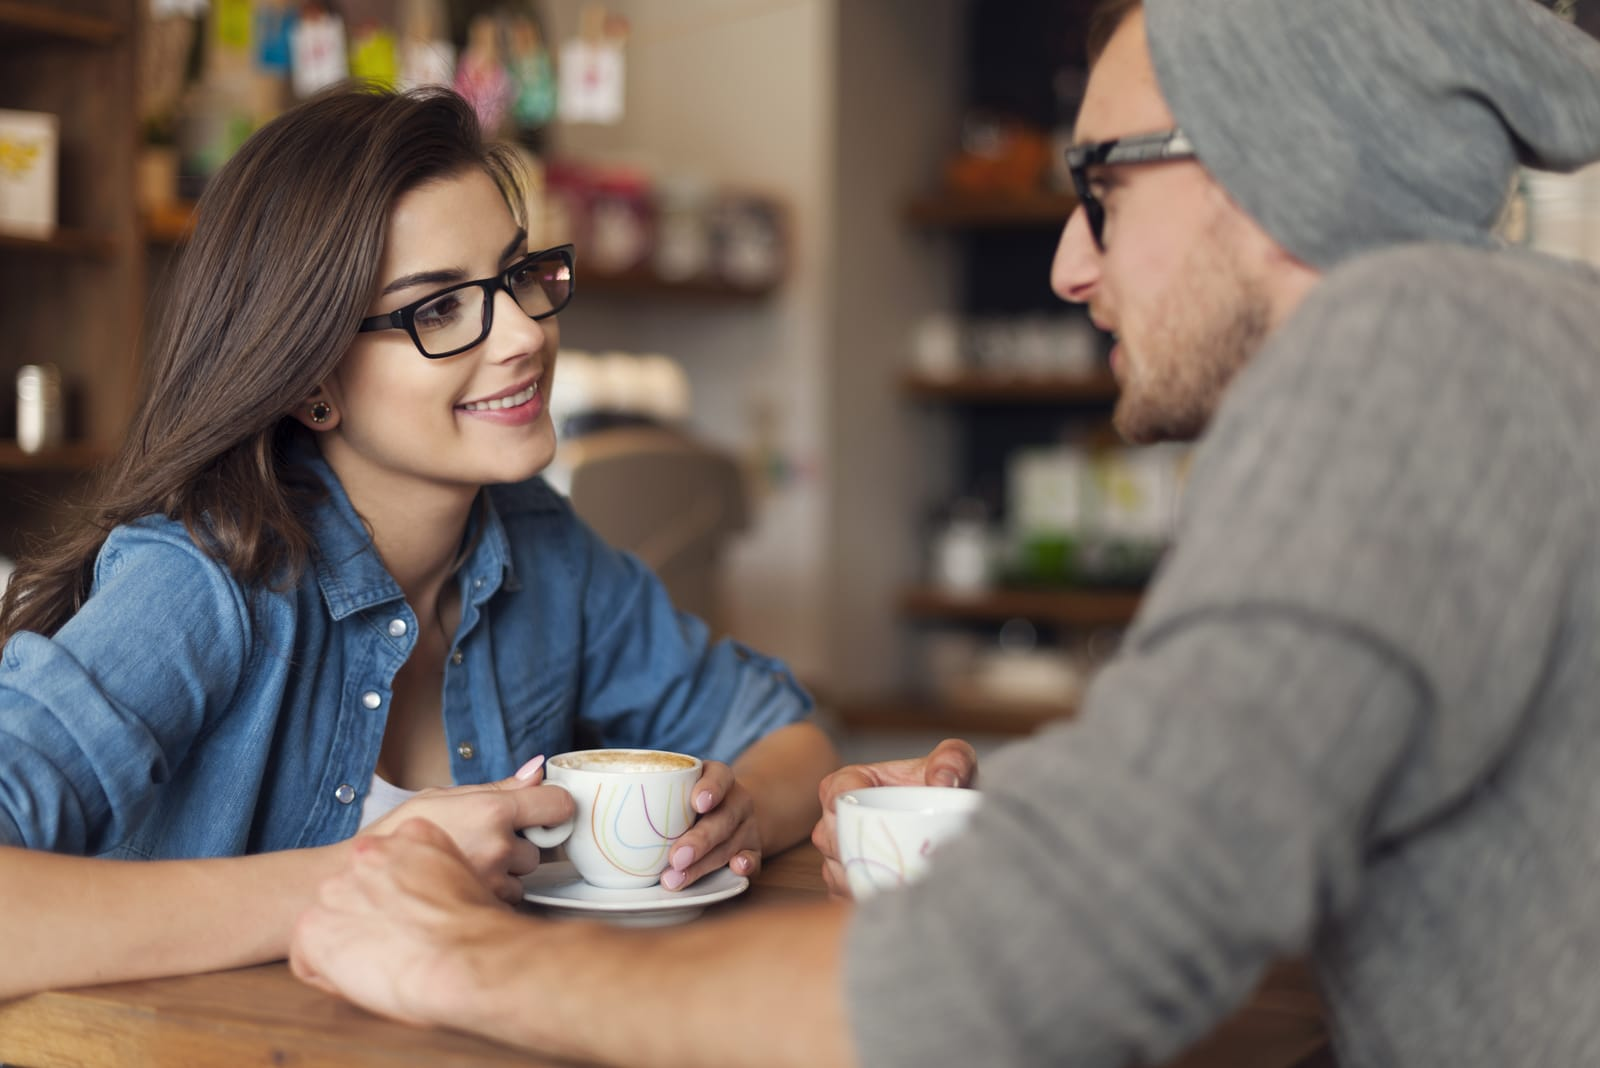 a man and a woman eat coffee and talk